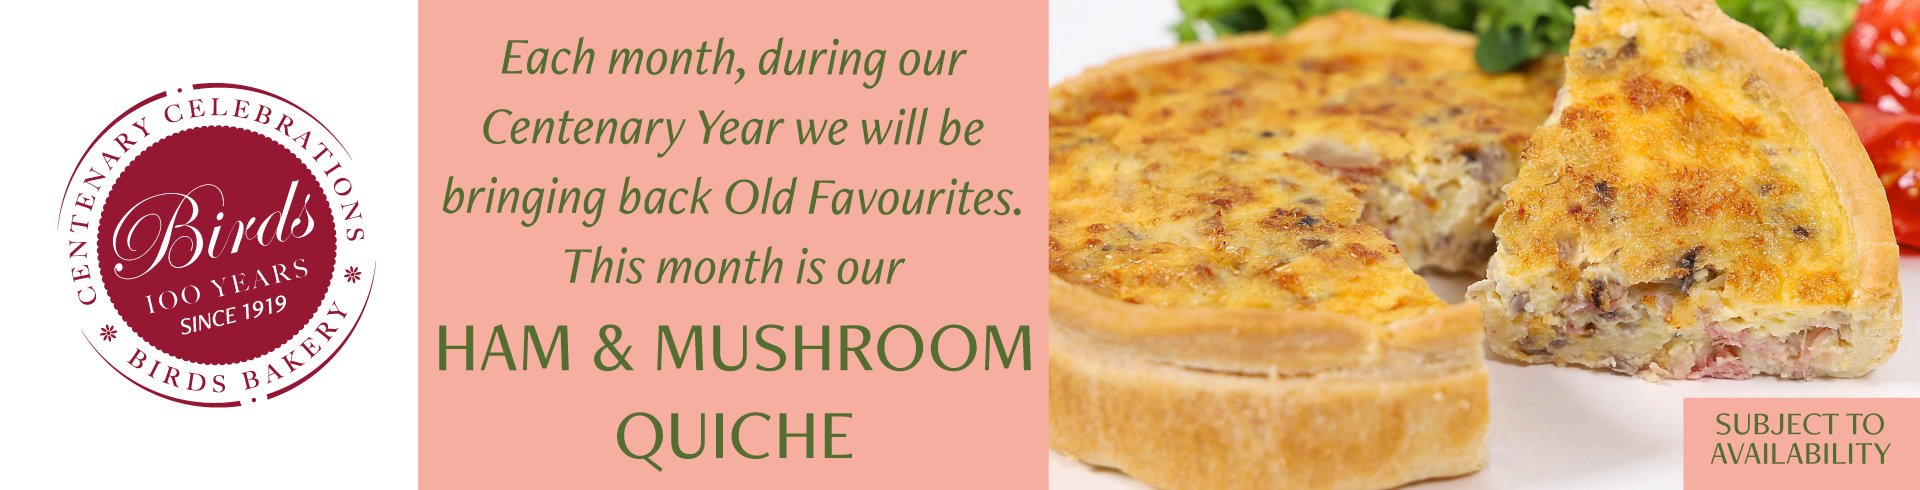 Each month, during our Centenary Year we will be bringing back Old Favourites. This month is our Ham and Mushroom Quiche